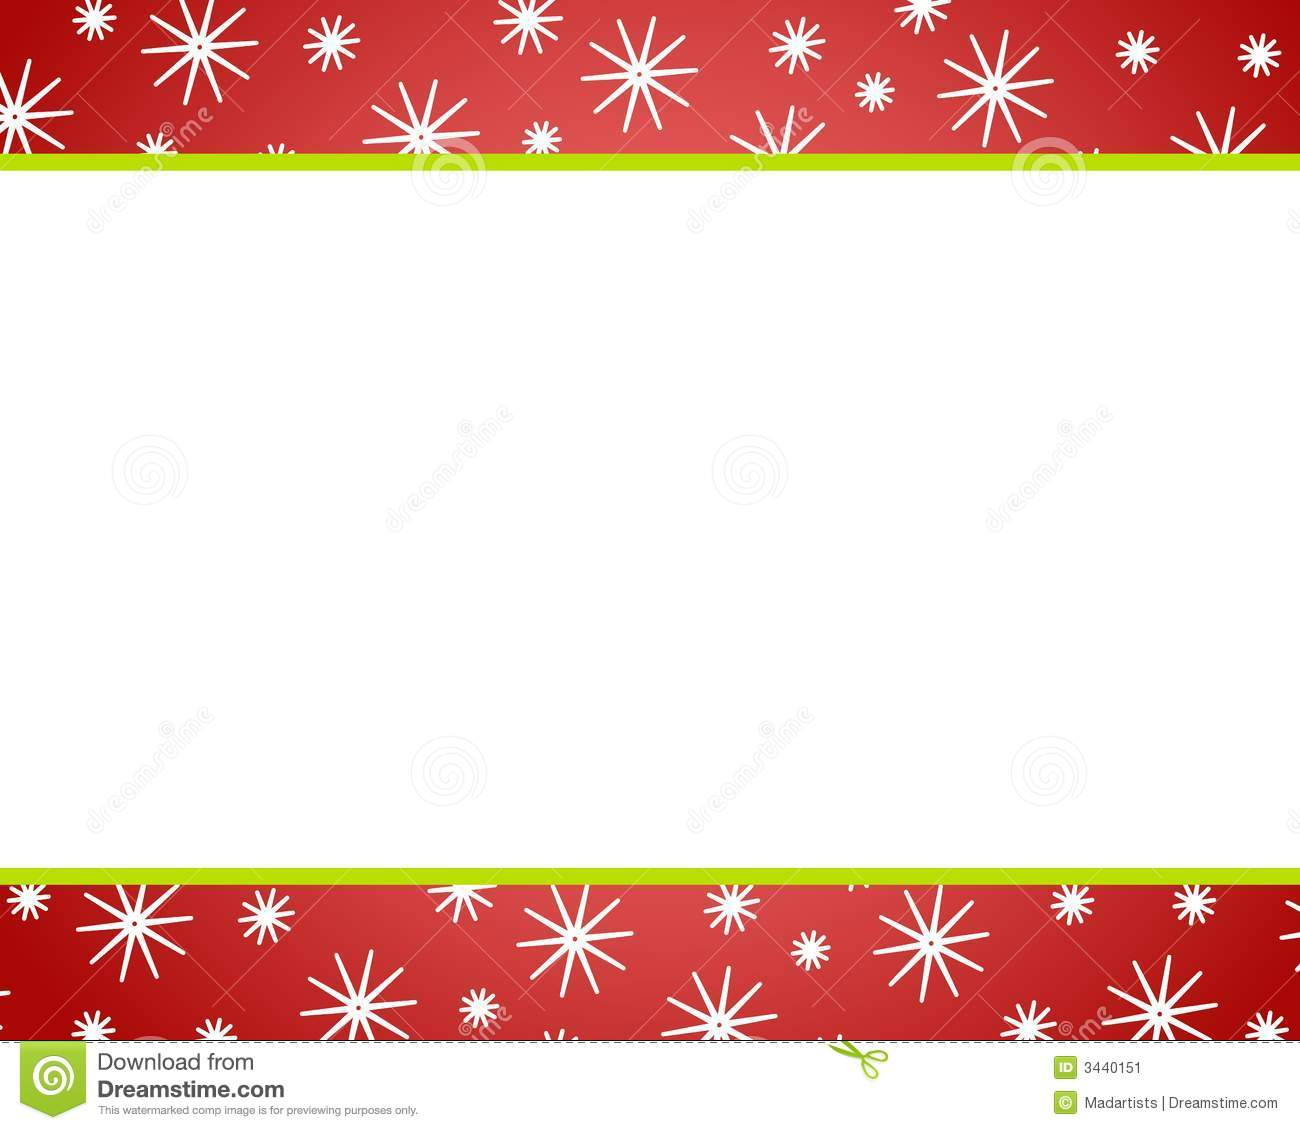 Free borders cliparts download. December clipart light border